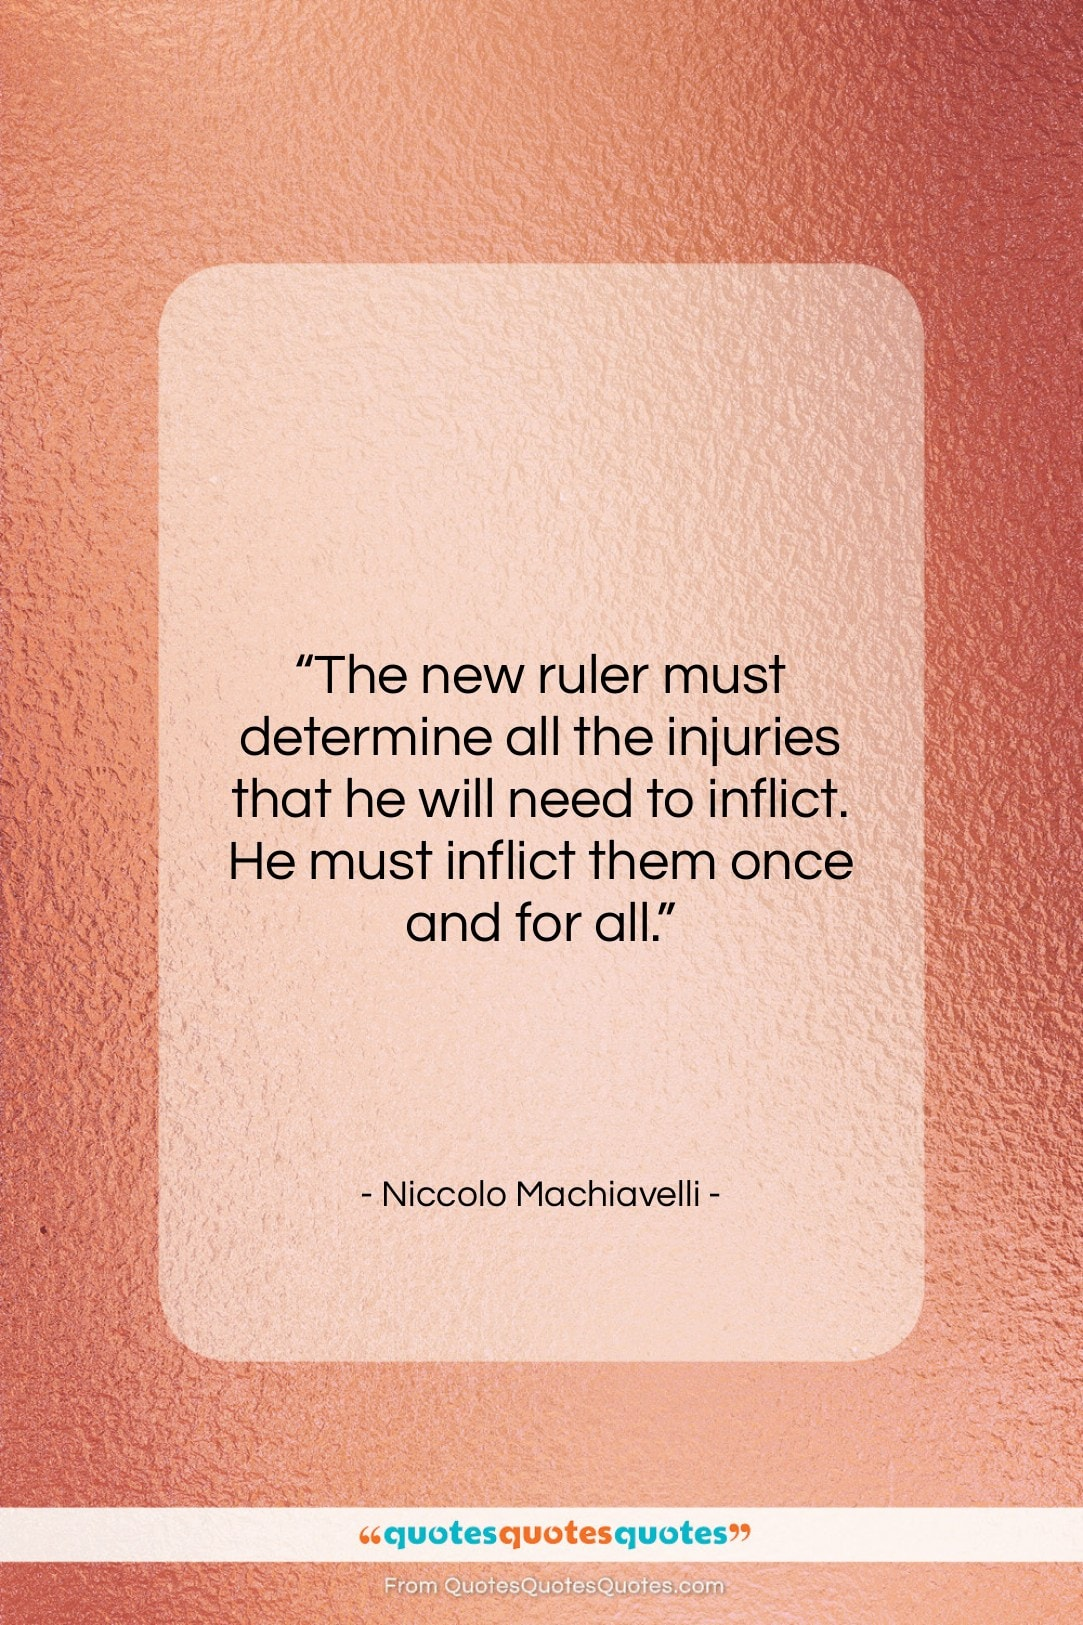 """Niccolo Machiavelli quote: """"The new ruler must determine all the…""""- at QuotesQuotesQuotes.com"""